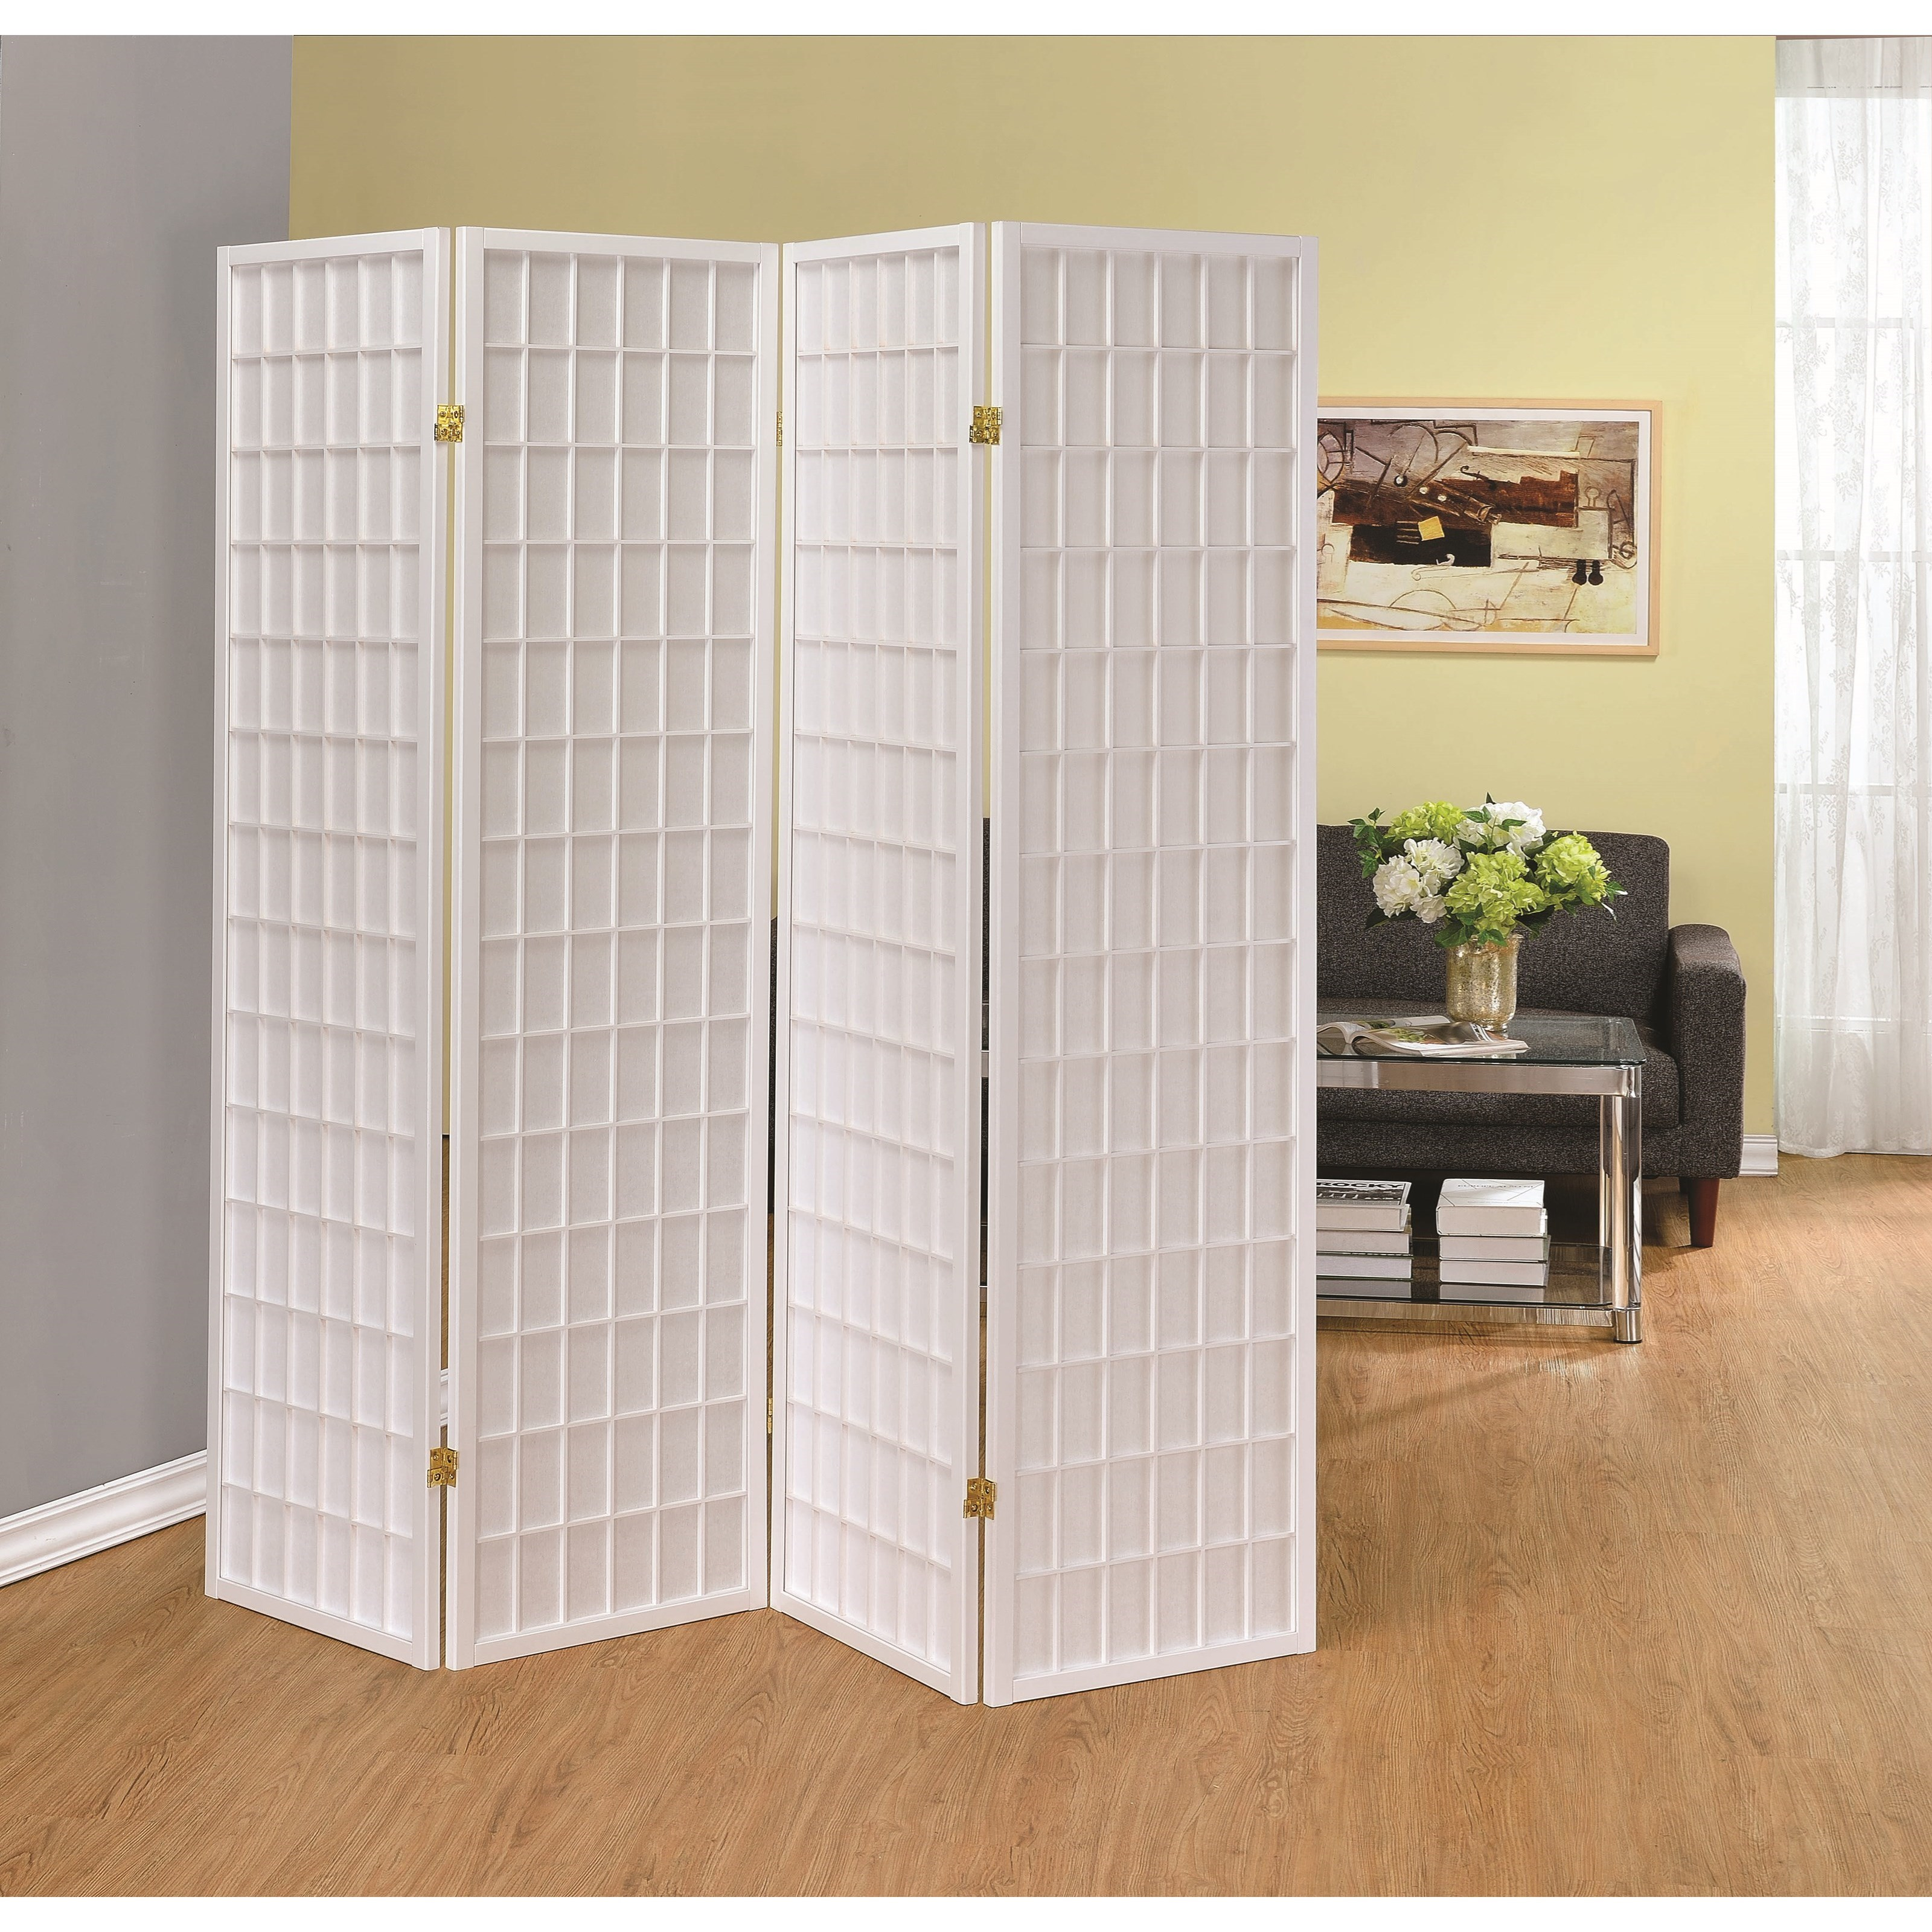 Coaster folding screens 902626 four panel white folding for Home dividers